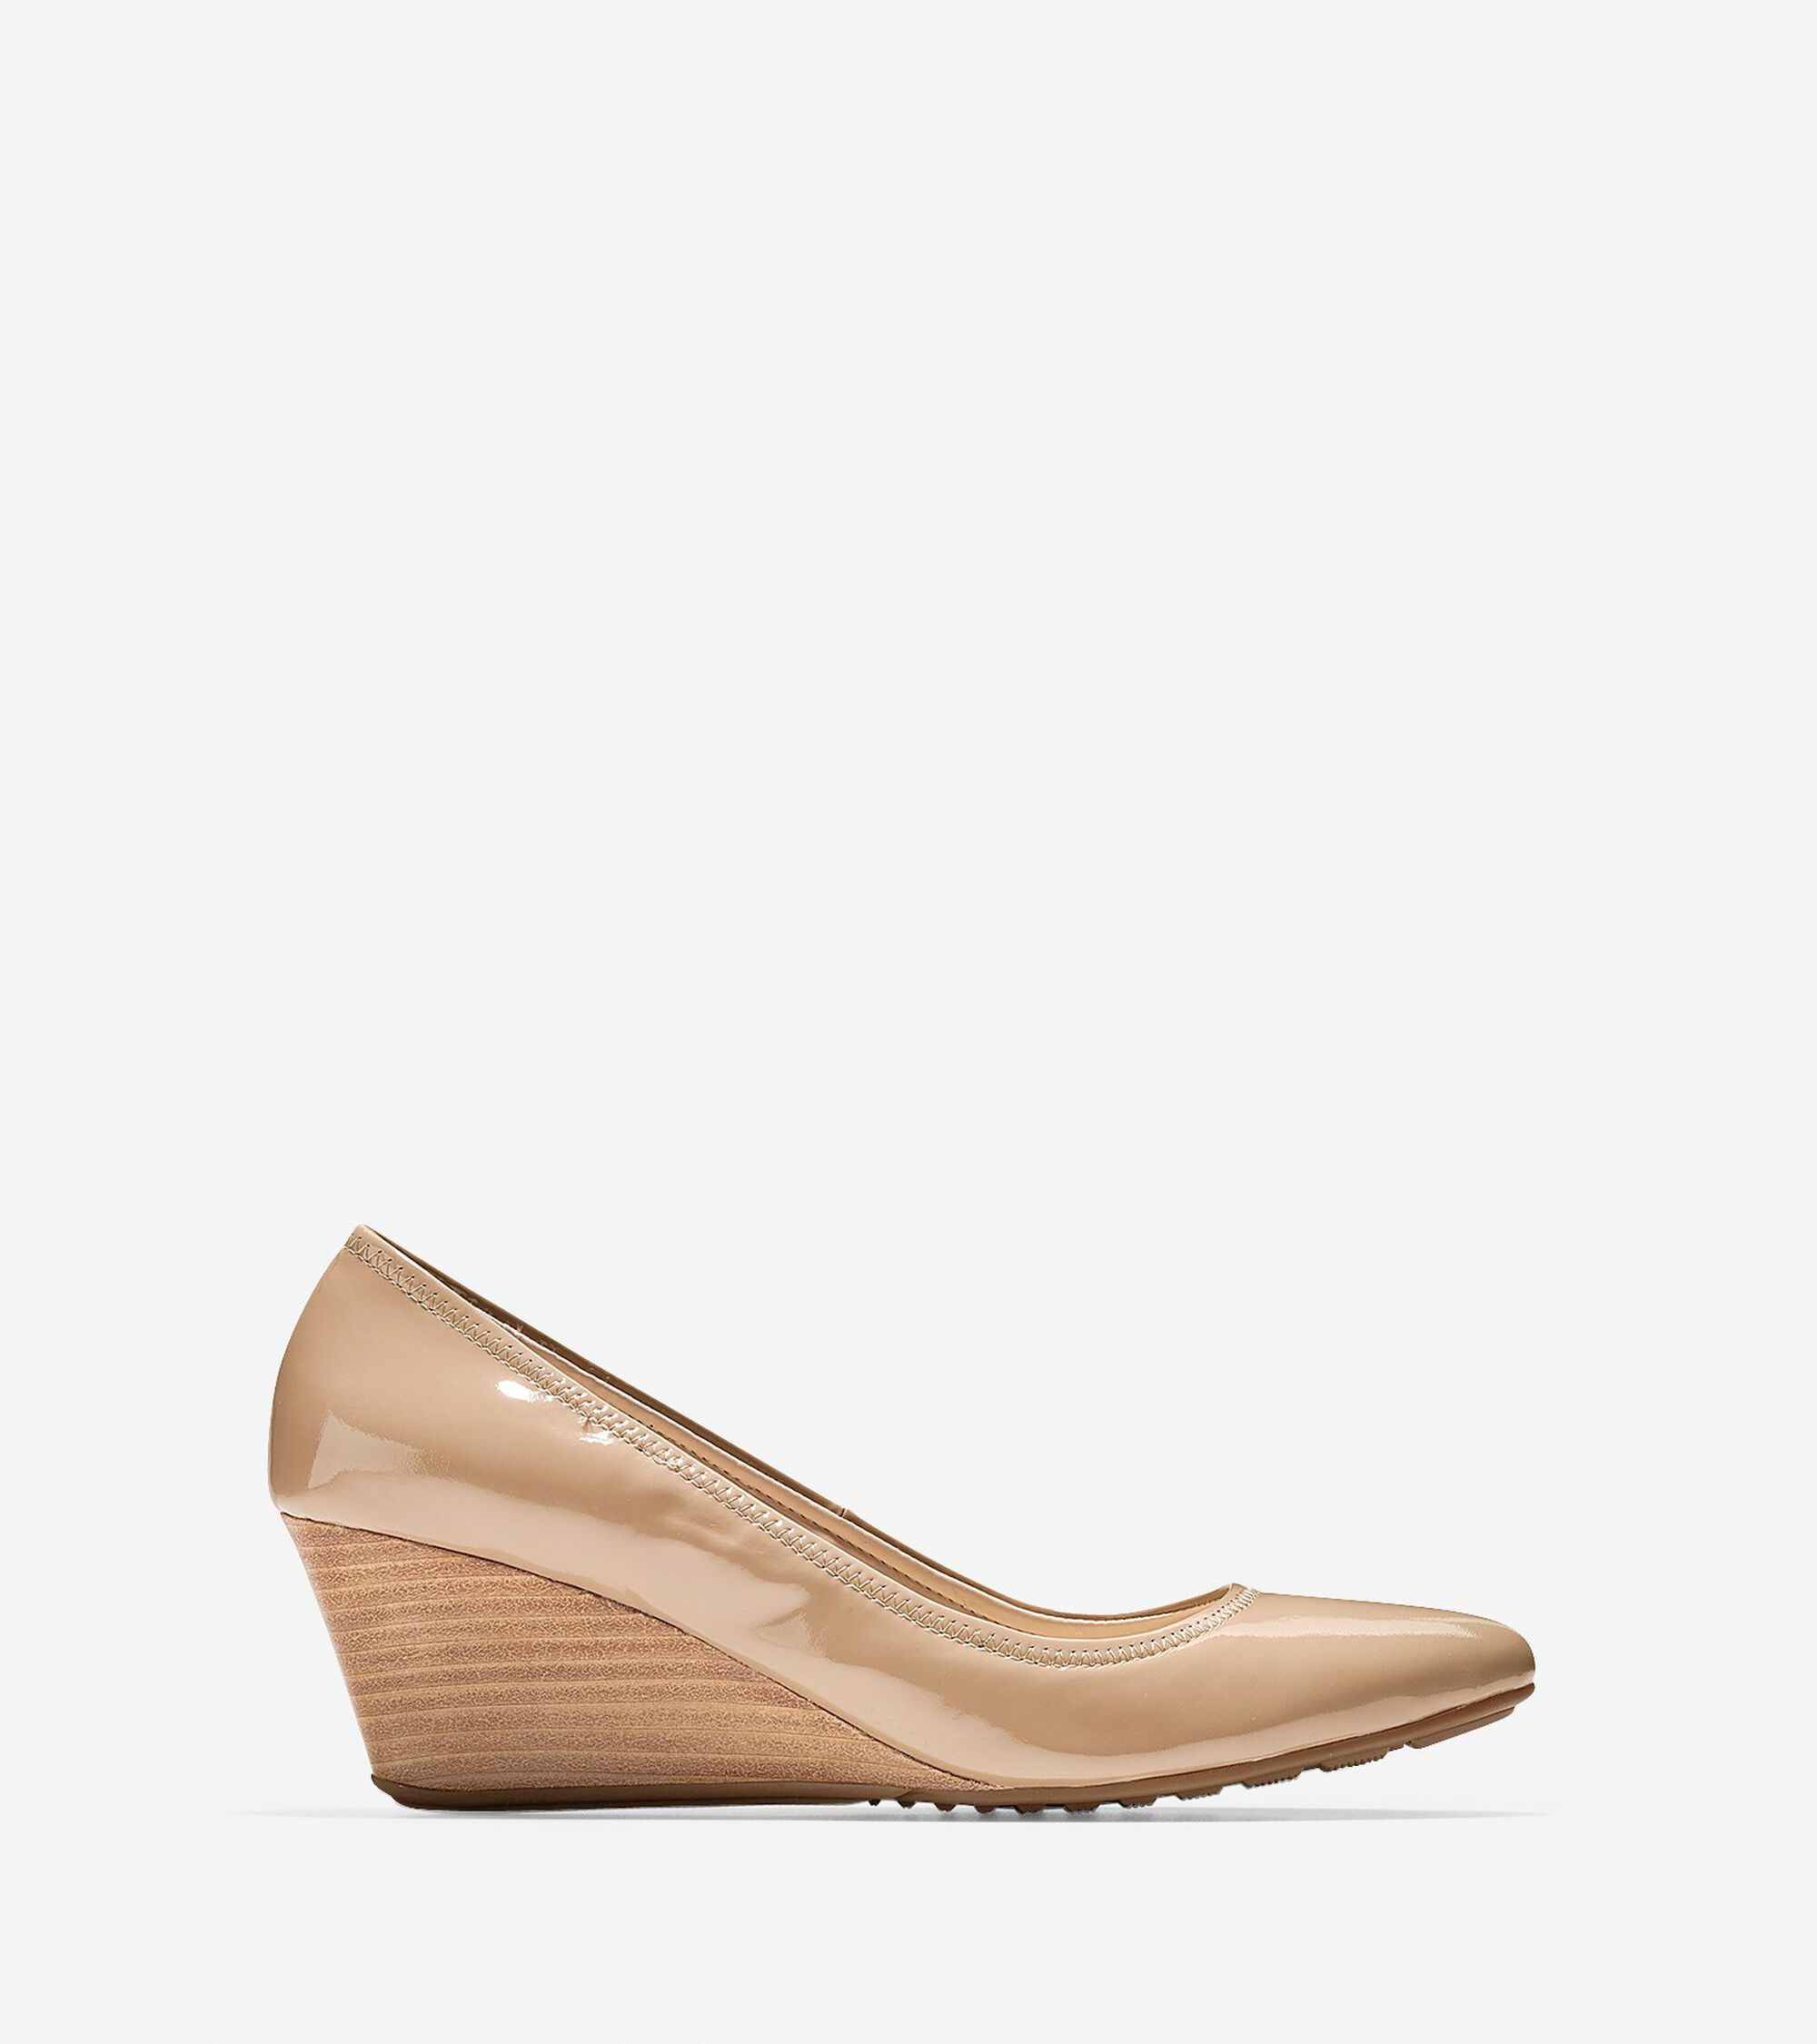 Cole Haan Womens Emory Luxe Wedge